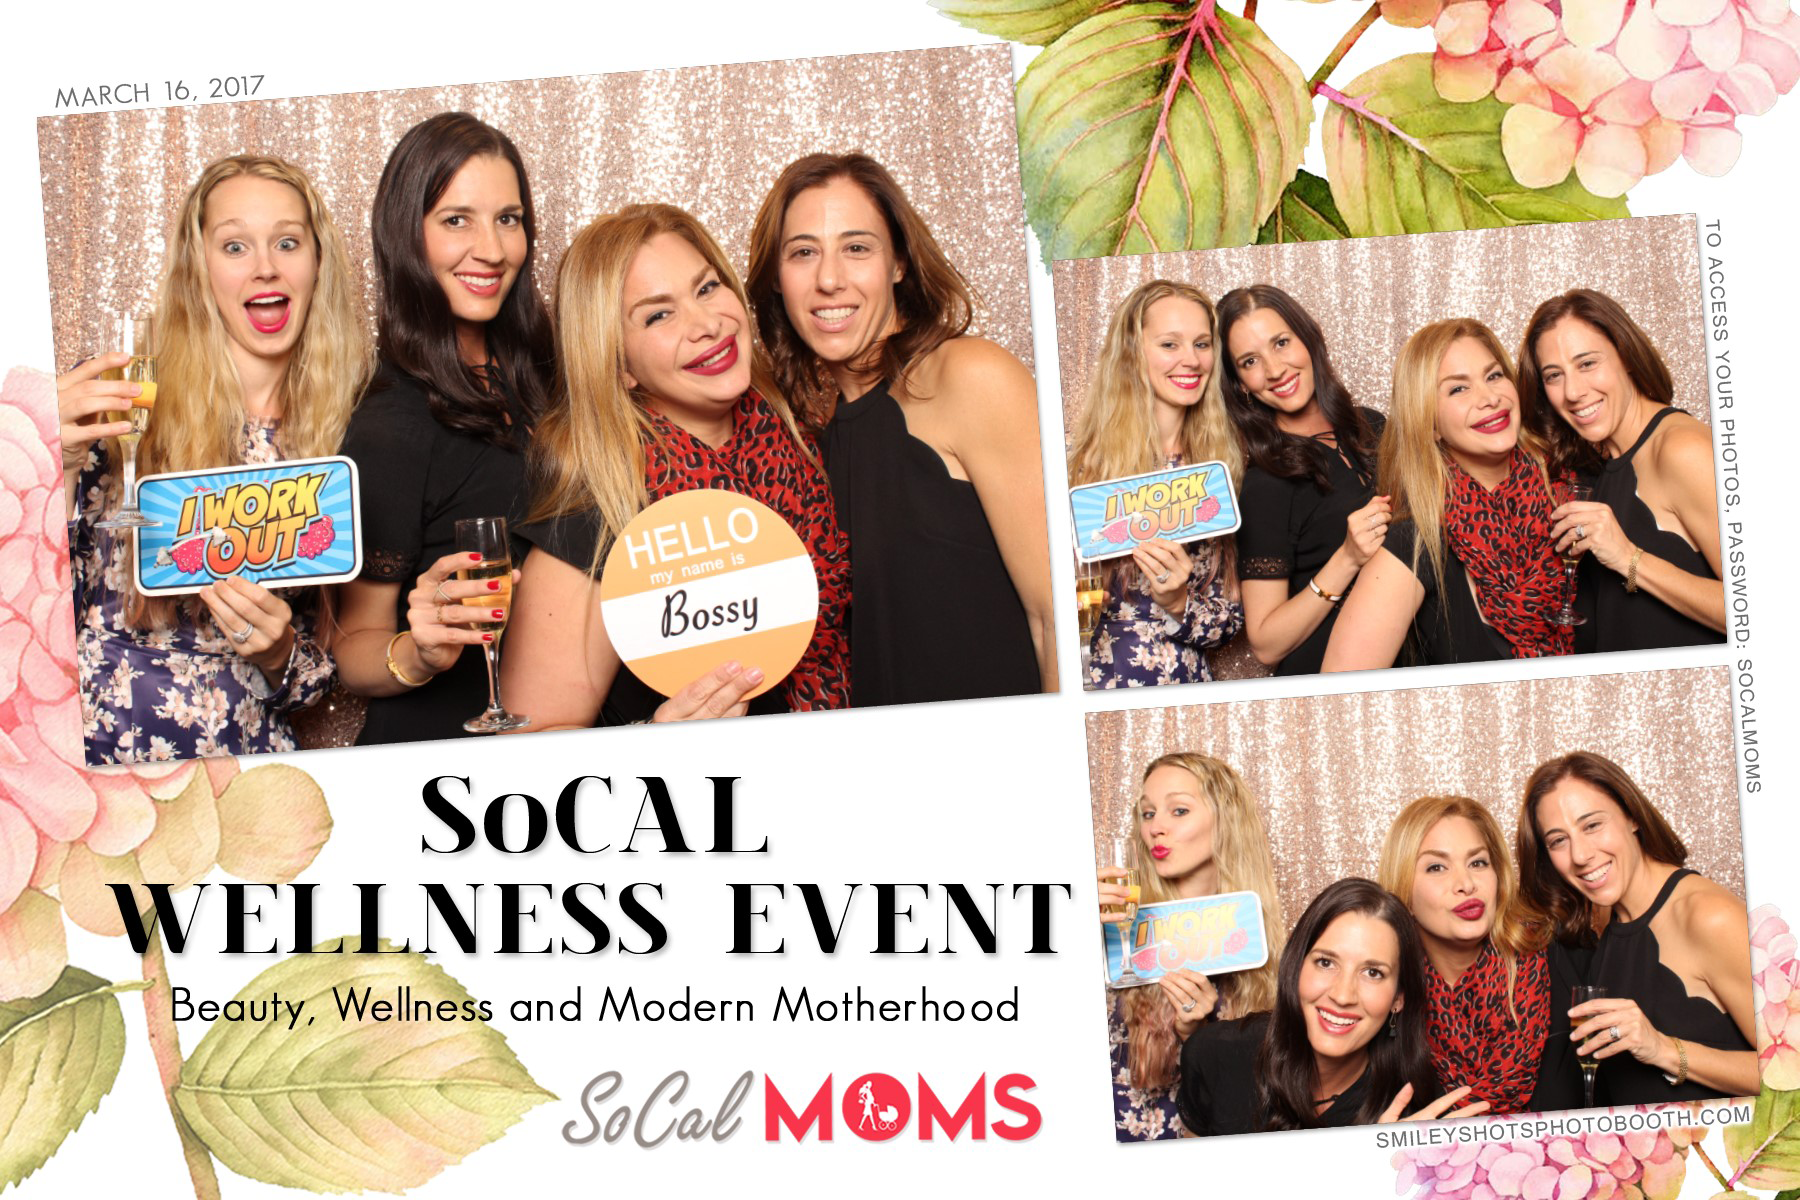 Socal Wellness Event Socal Moms Smiley Shots Photo Booth Photobooth (7).png